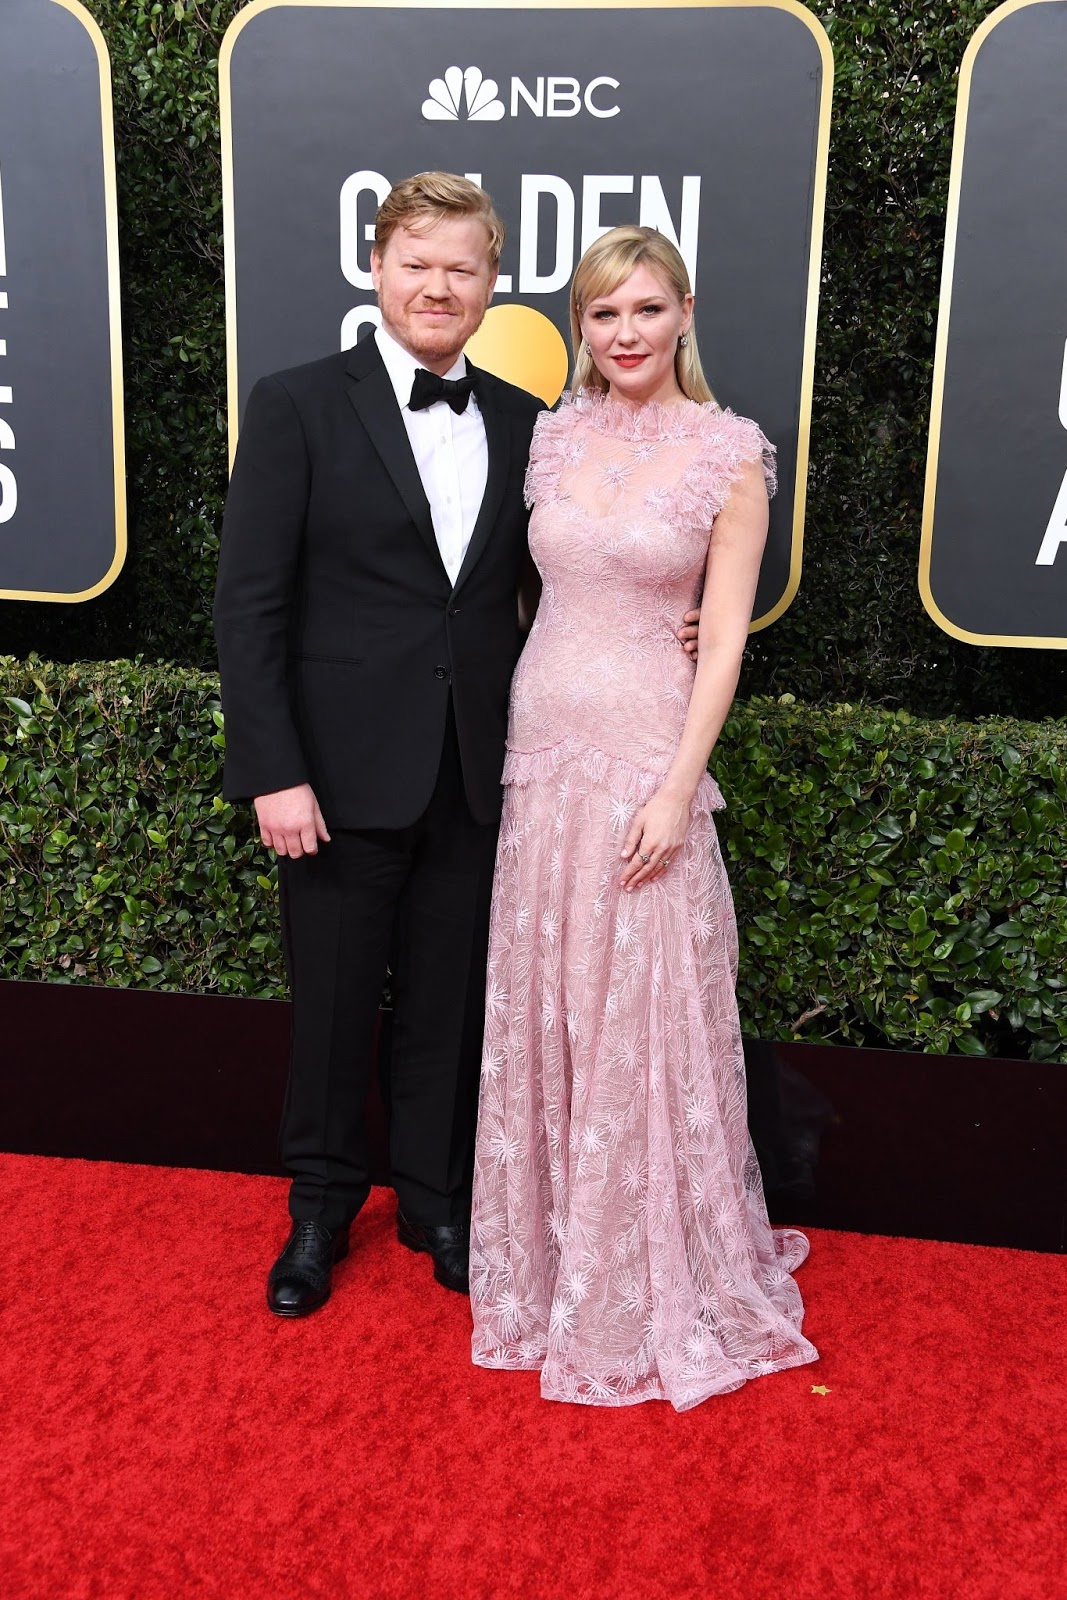 Kirsten Dunst and Jesse Plemons Make Rare Appearance at the Golden Globes: 'Parents' Night Out!'